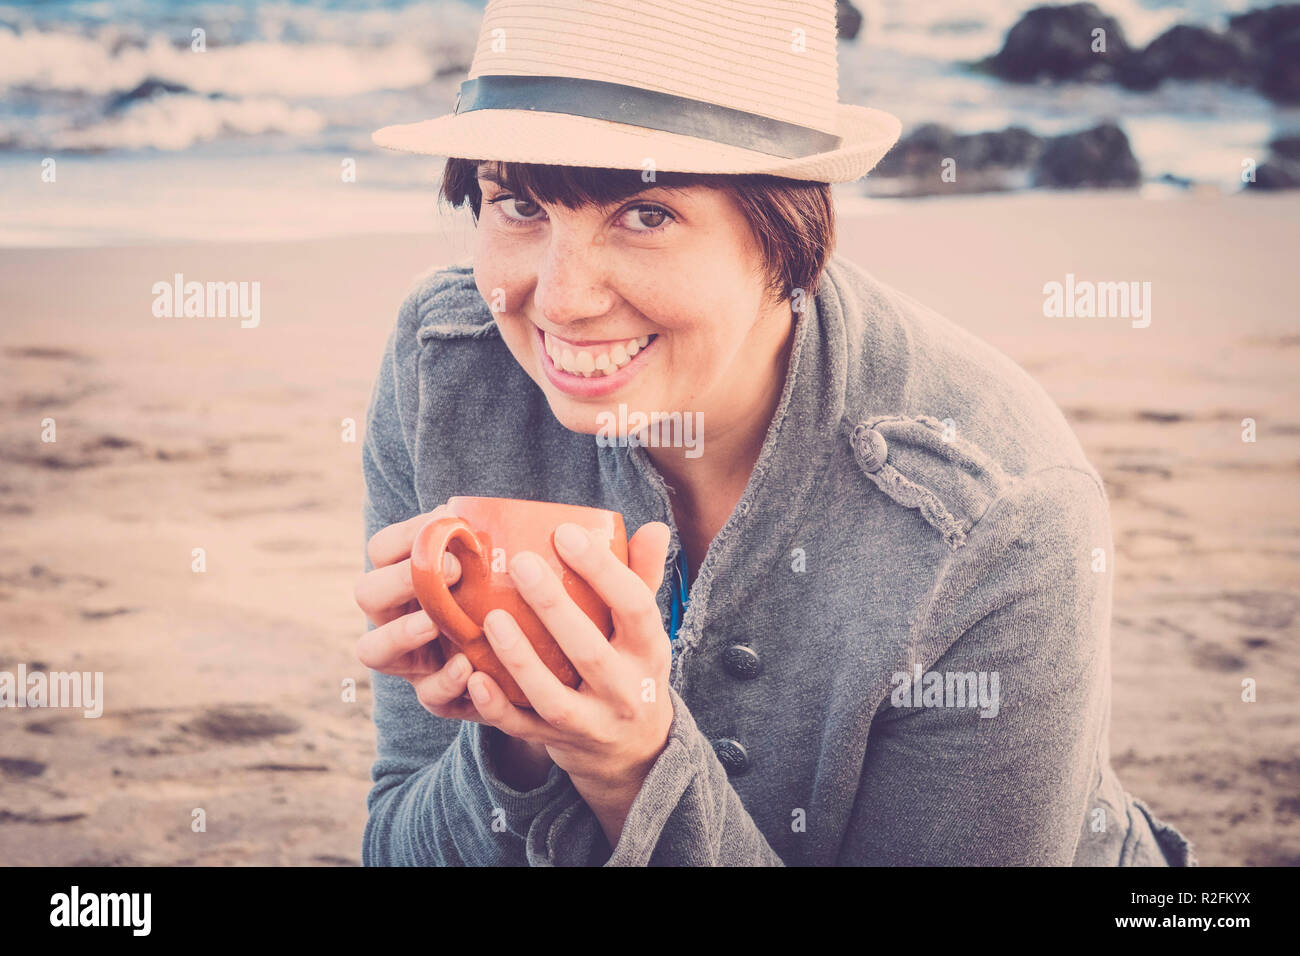 nice smiling young woman sit down at the beach with ocean in background. drinking a cup of tea or coffee for a leisure activity relalxed and connected with the nature - Stock Image